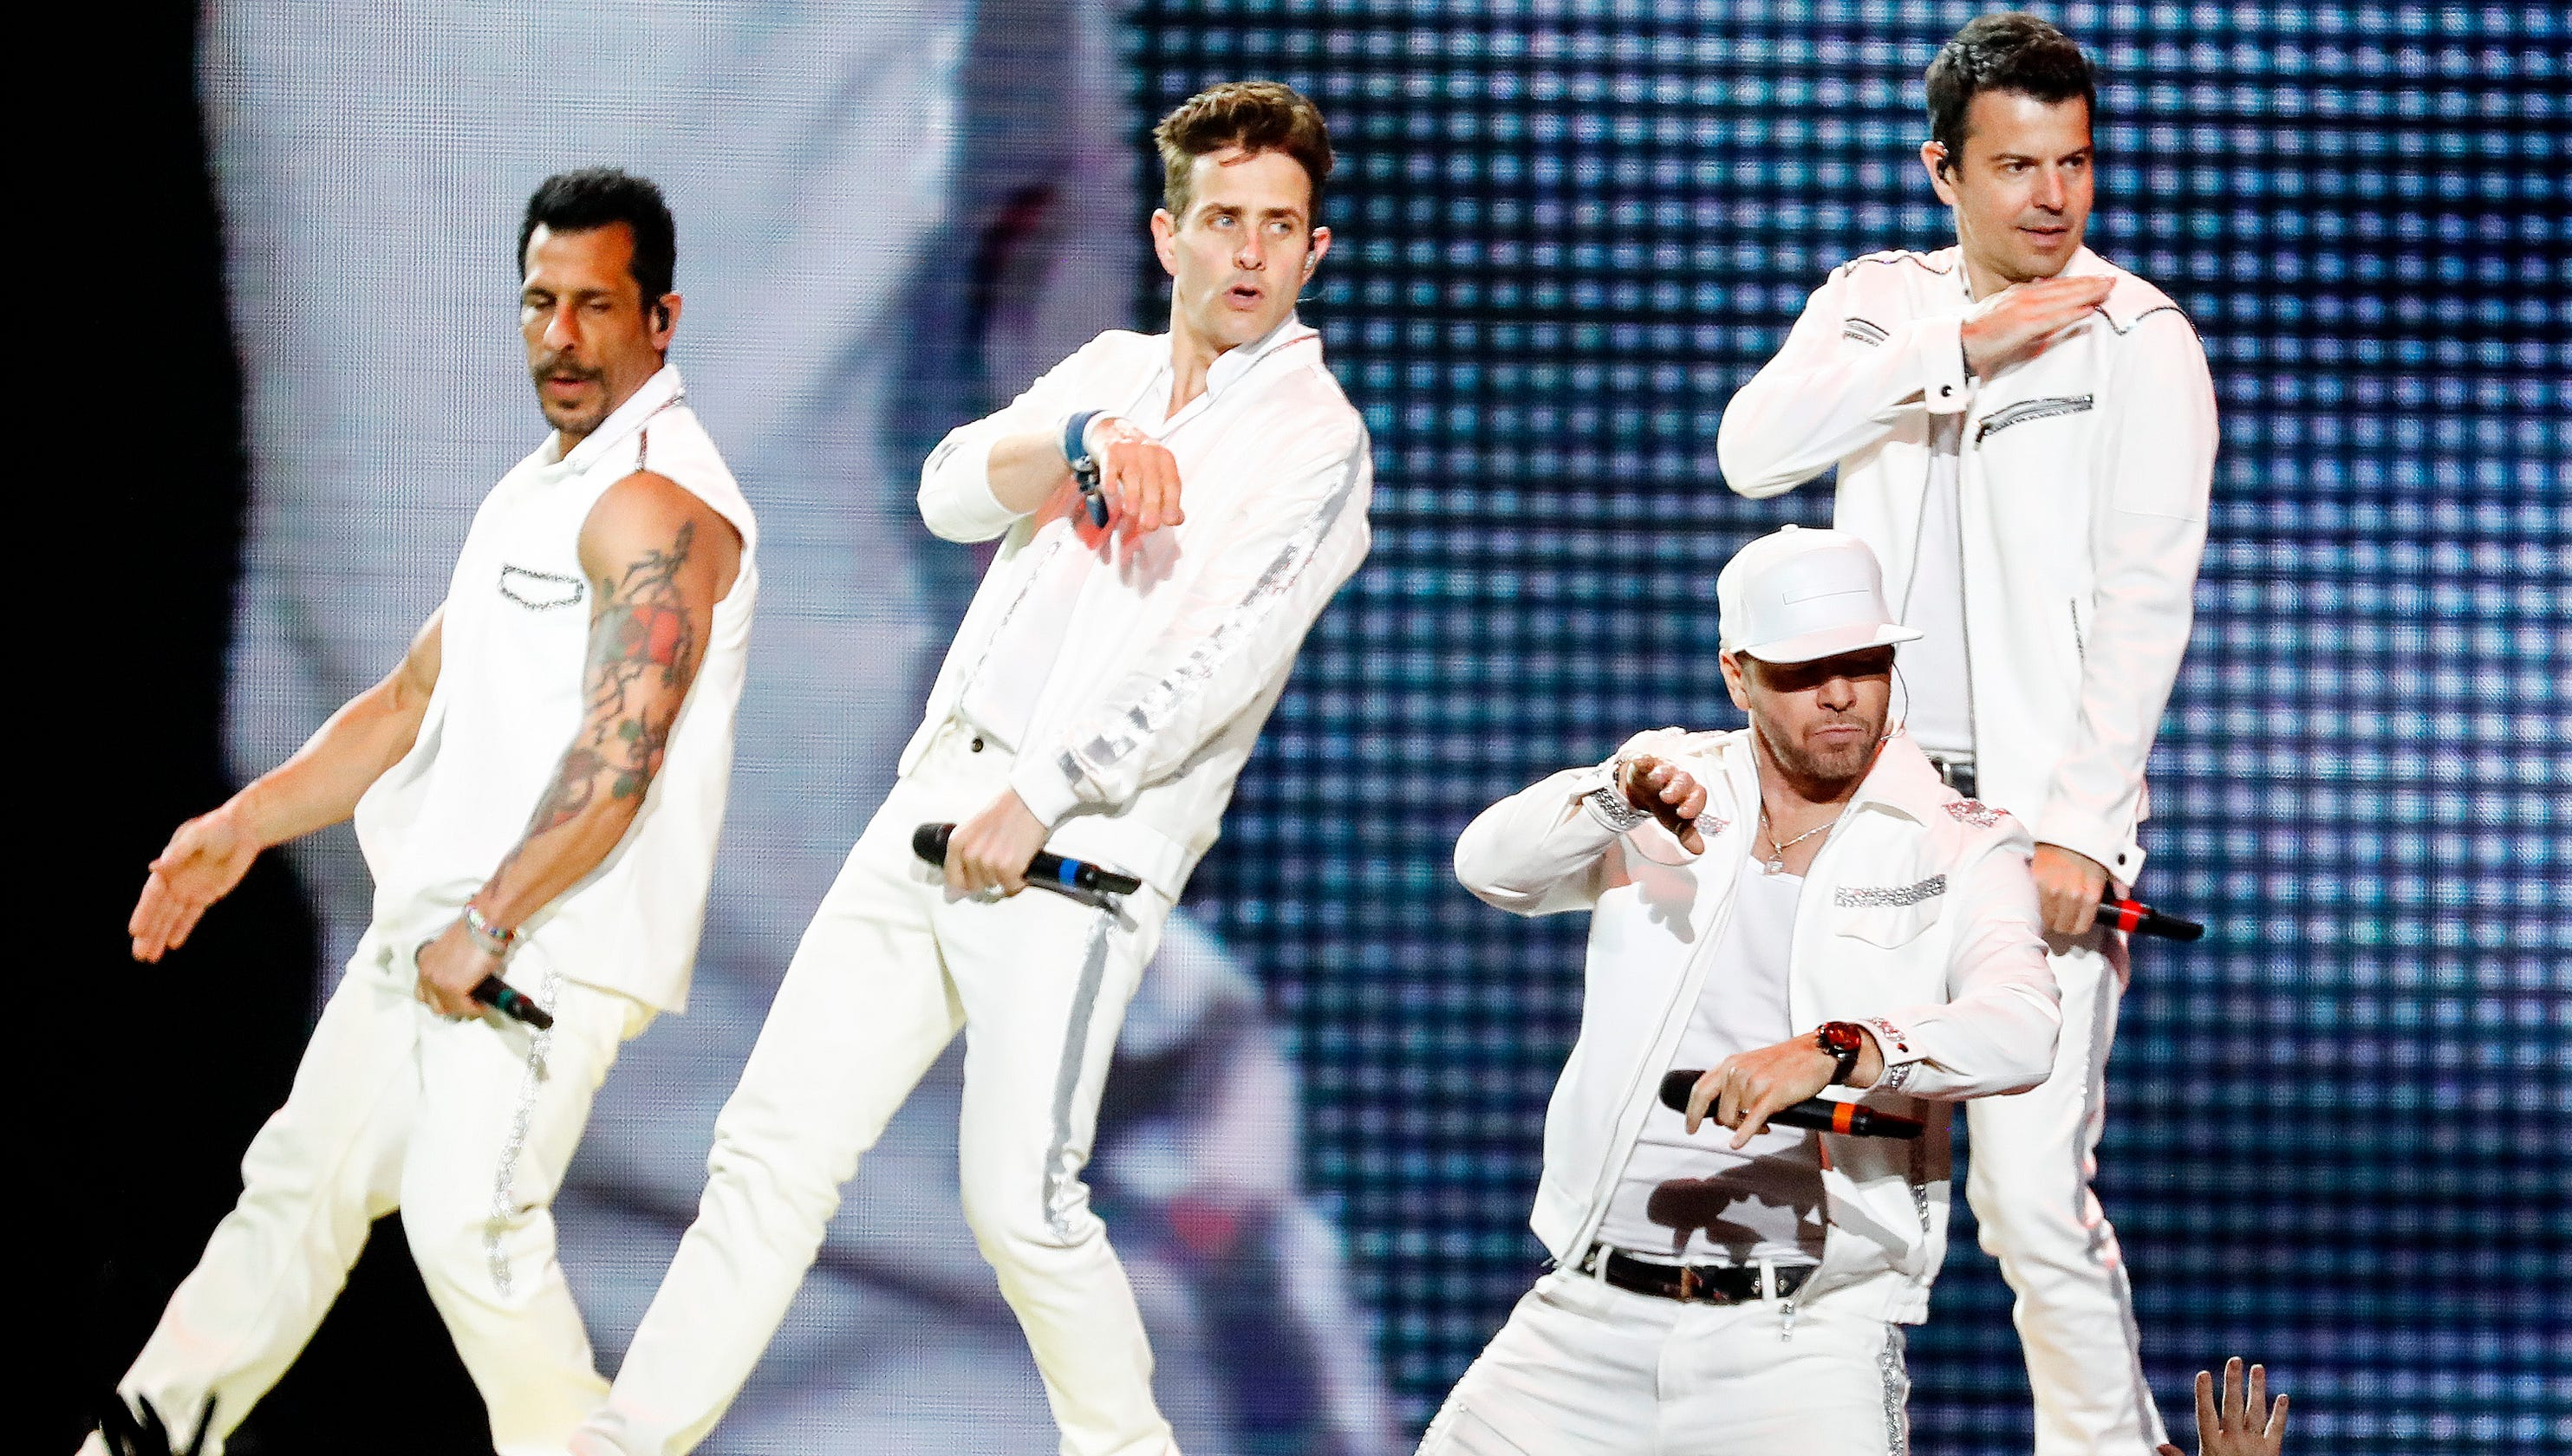 New Kids On The Block Turn Back The Clock At FedExForum